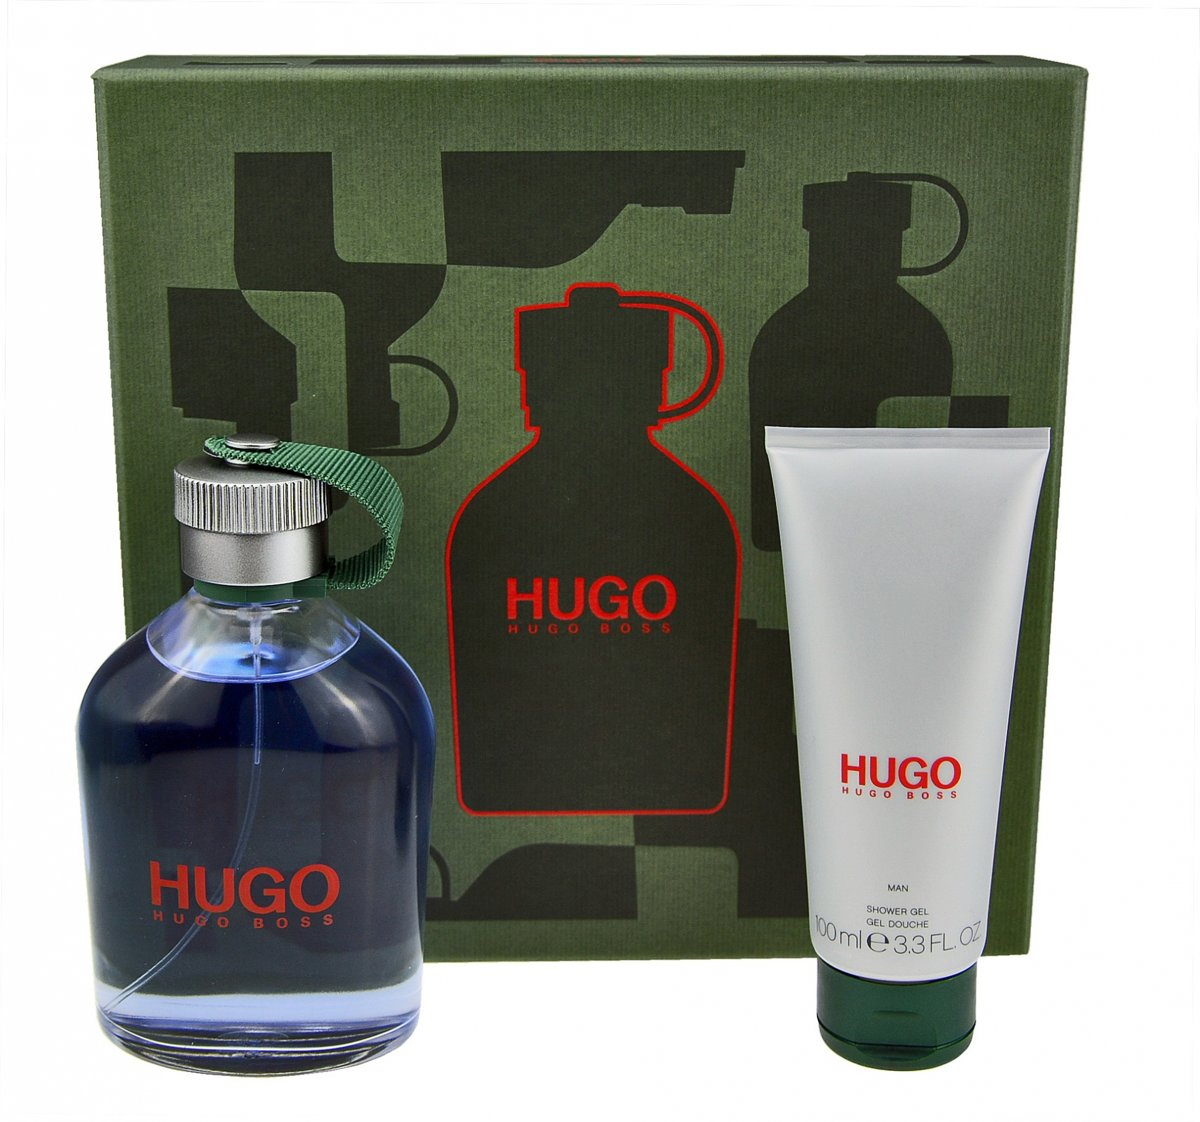 Hugo Boss - Eau de toilette - Hugo 200ml eau de toilette + 100ml showergel - Gifts ml